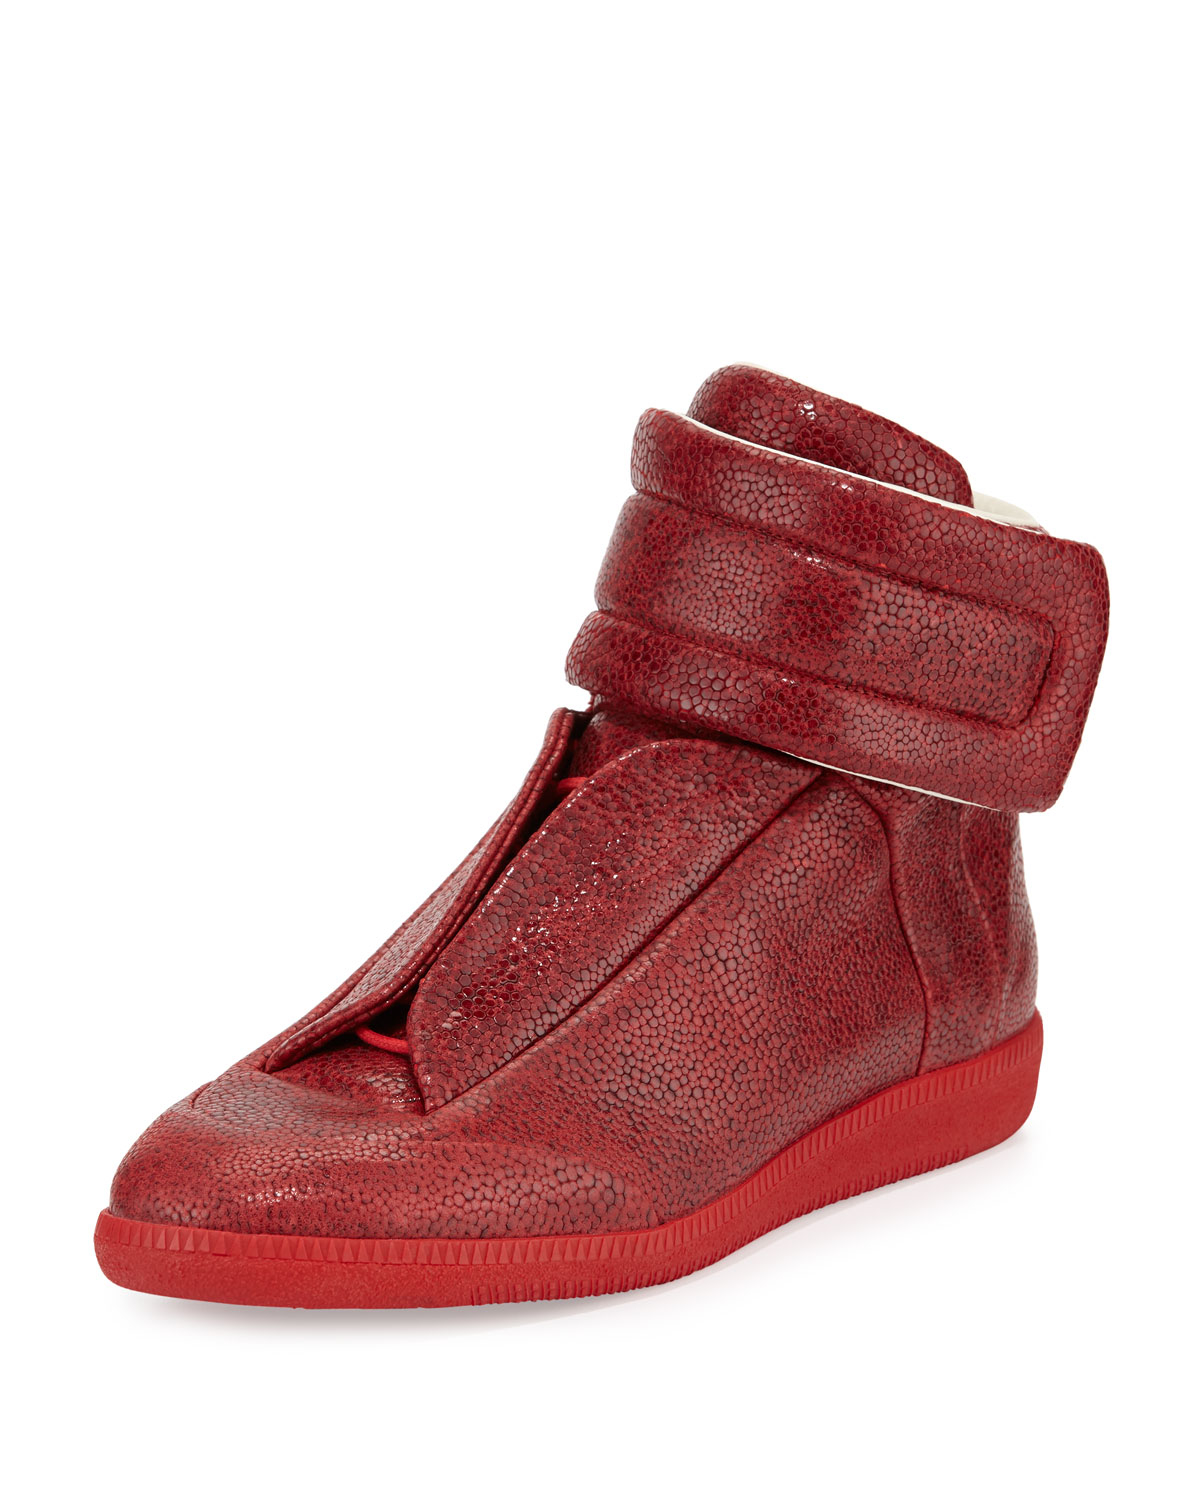 Maison Margiela Future Printed Leather High Top Sneaker In